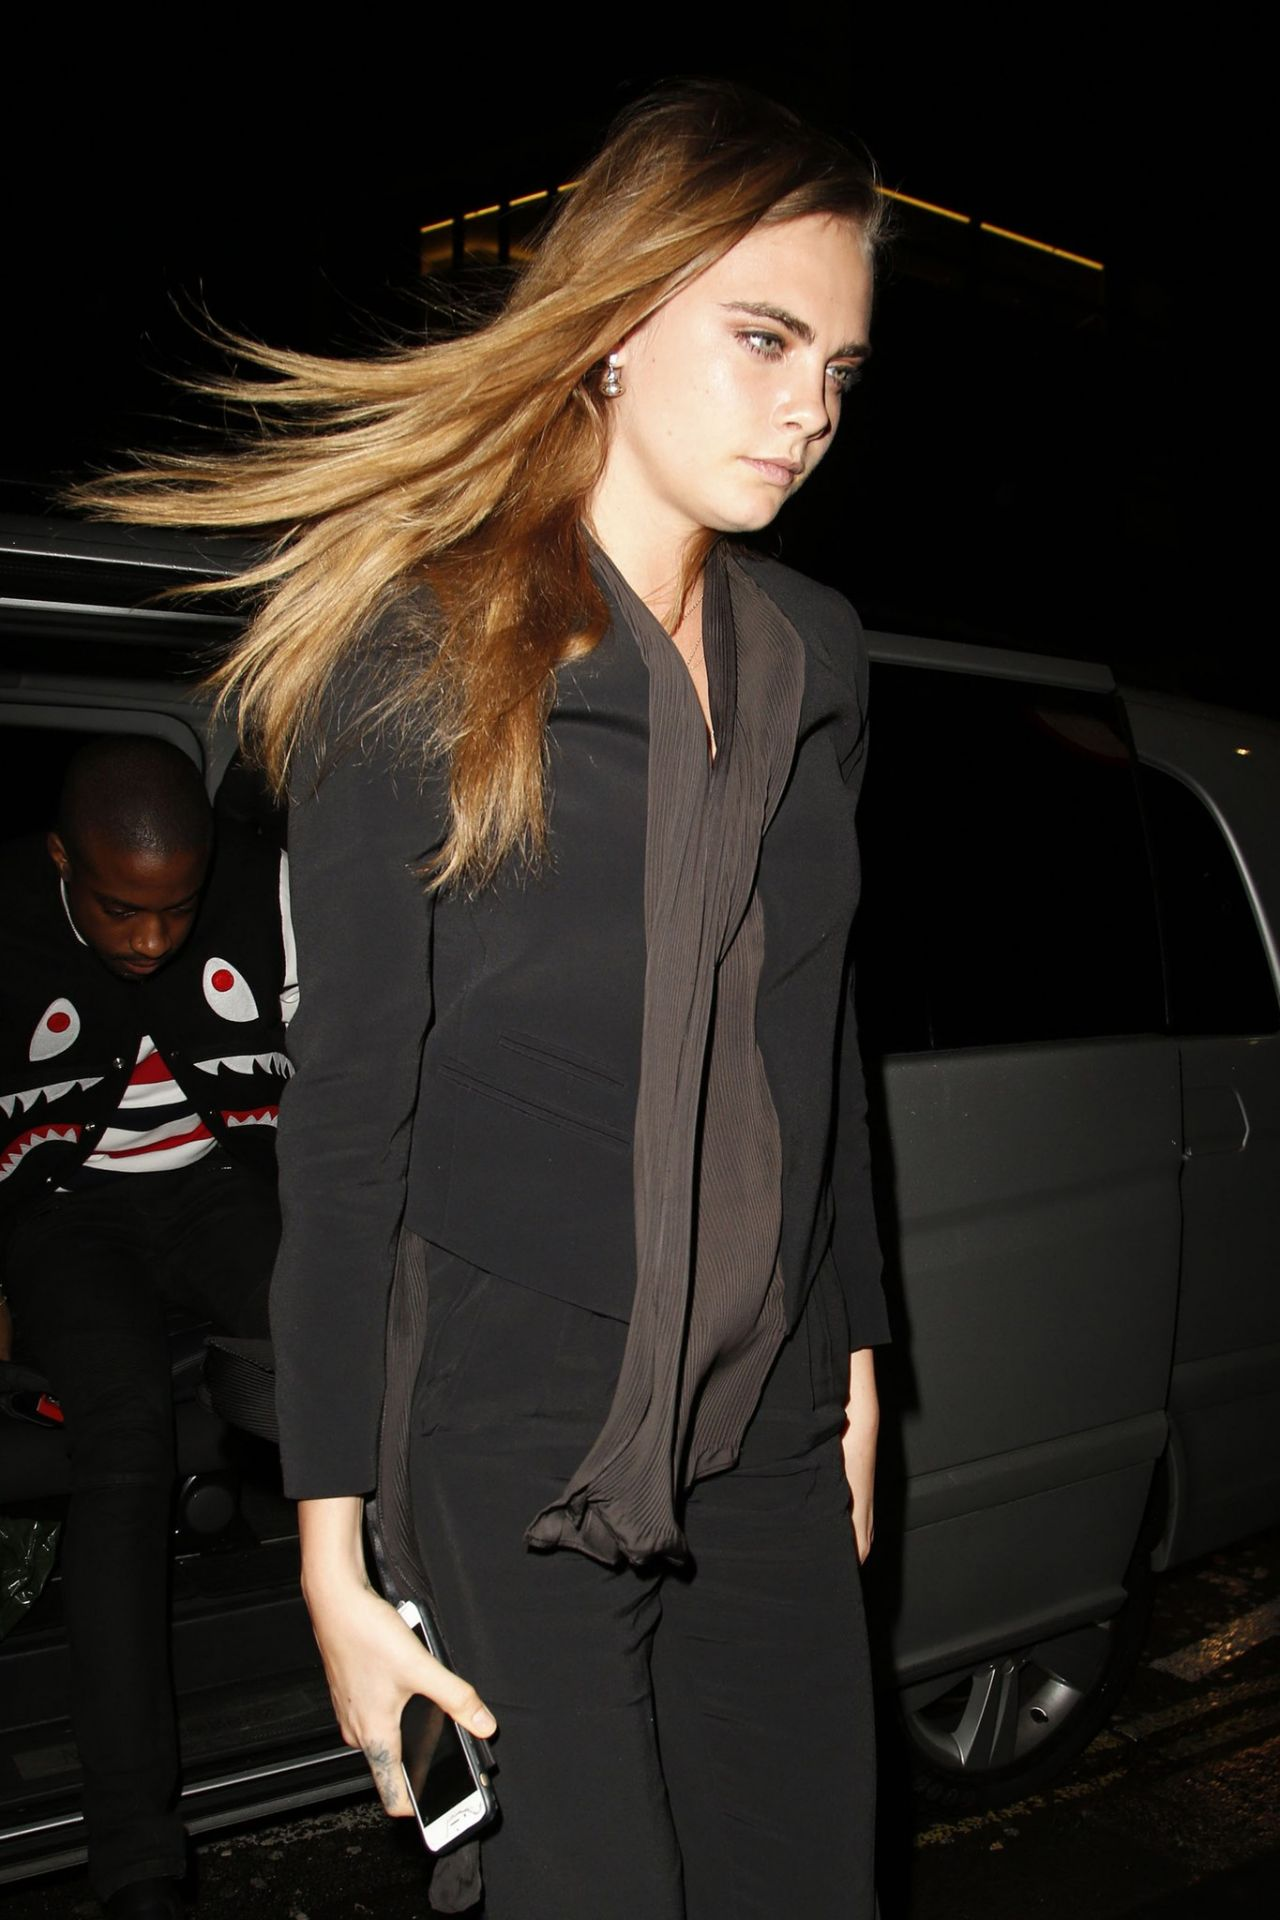 Cara Delevingne Style - Headed to Mr. Chow